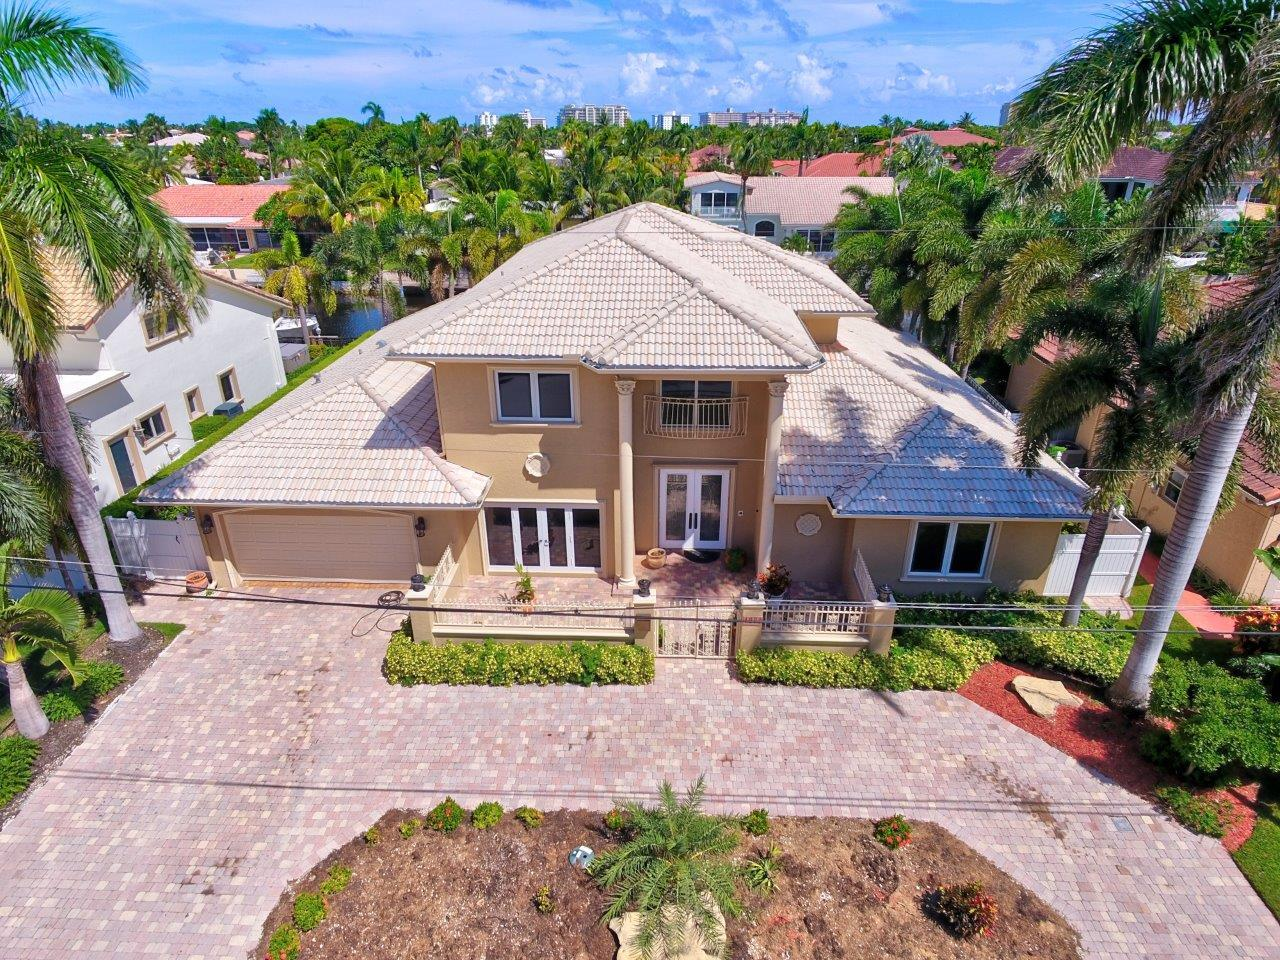 4280 23rd Terrace, Lighthouse Point, Florida 33064, 5 Bedrooms Bedrooms, ,4.1 BathroomsBathrooms,Single Family,For Sale,23rd,RX-10492198